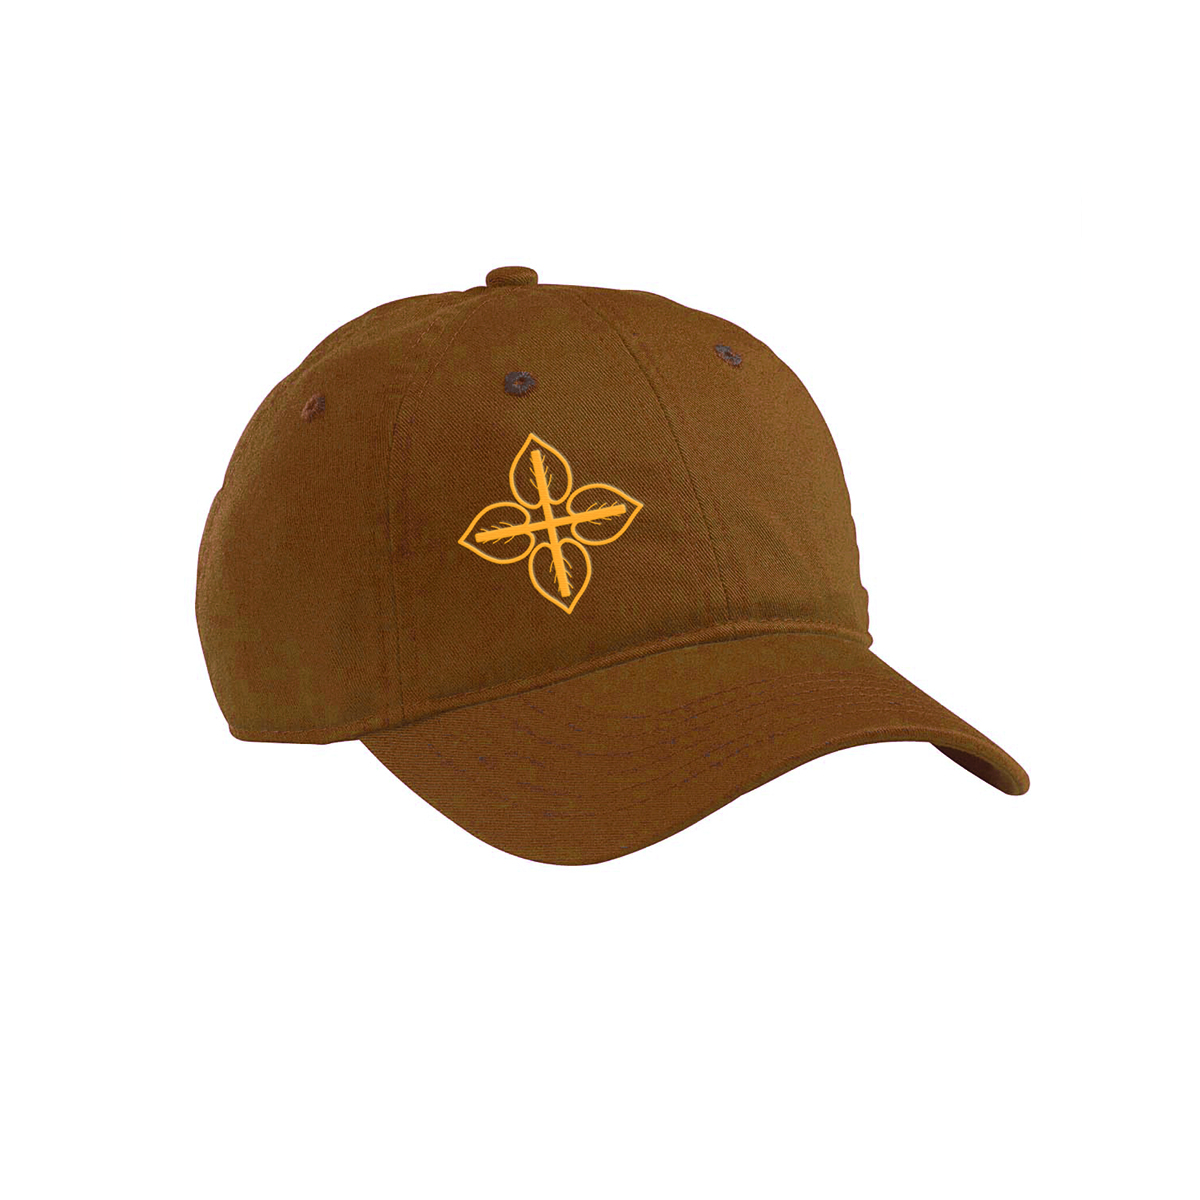 LOVE+EARTH ORGANIC COTTON TWILL UNSTRUCTURED BASEBALL CAP